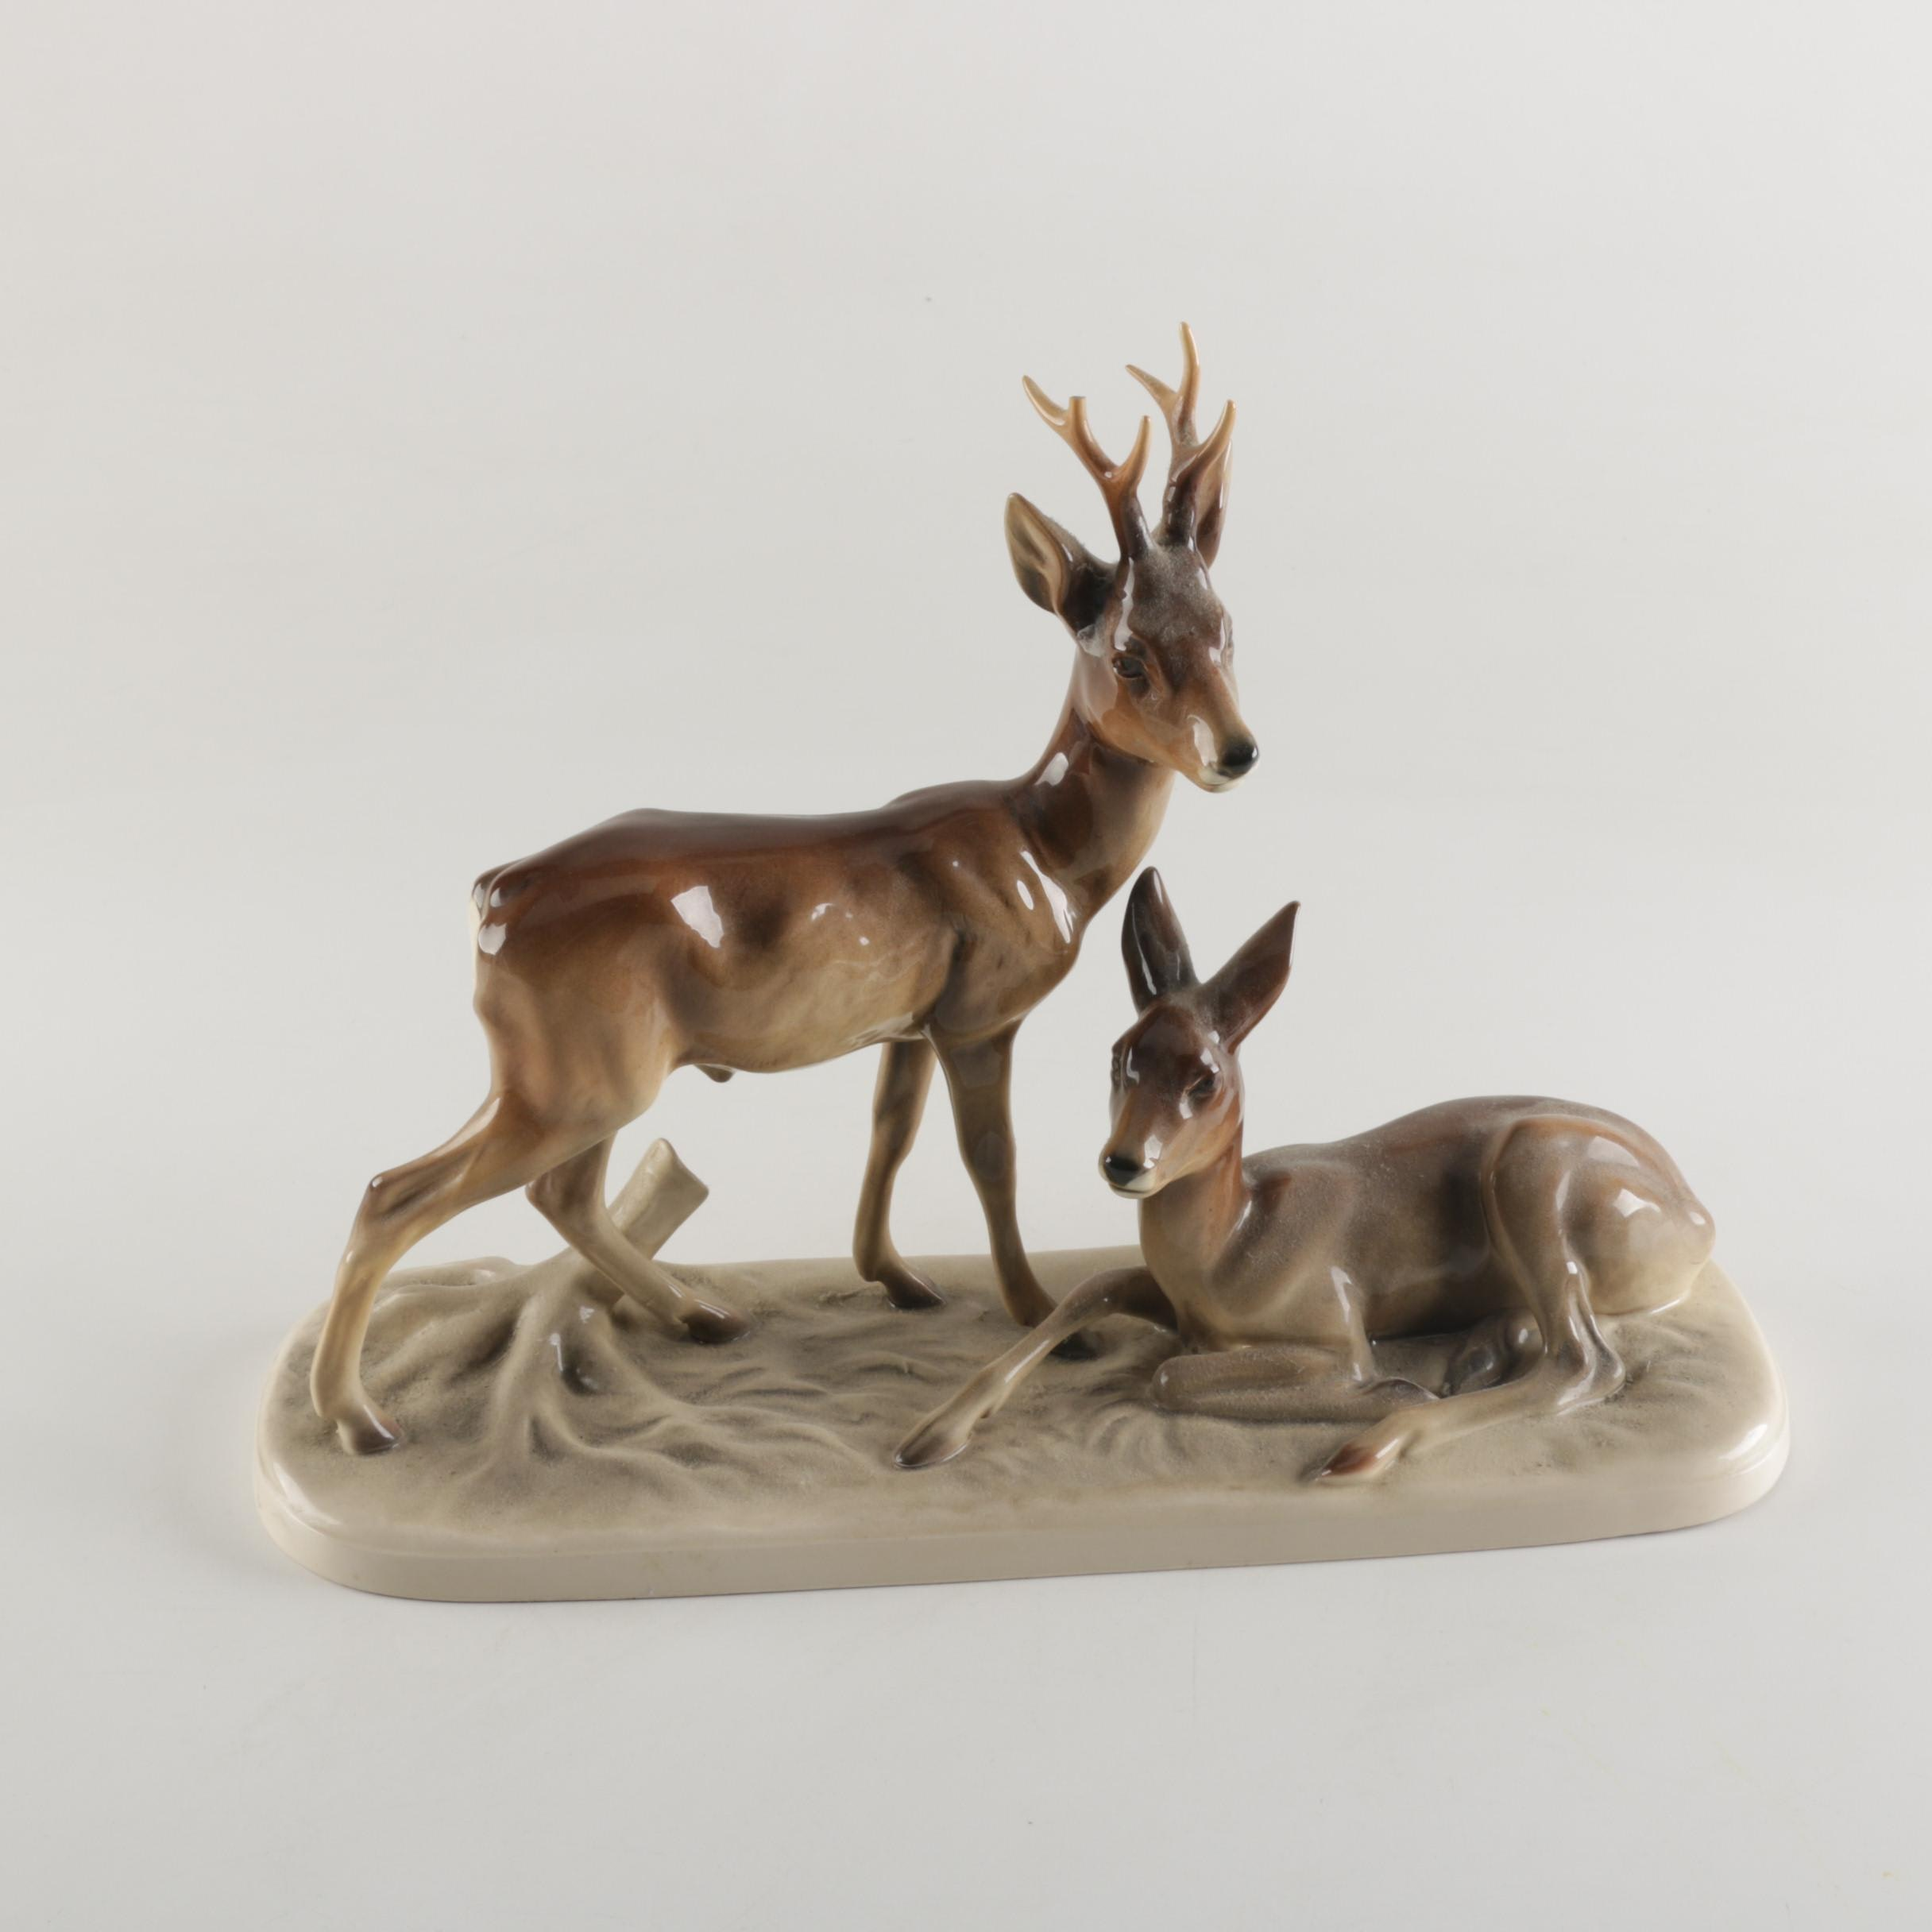 Hertwig Porcelain Buck and Doe Figurine